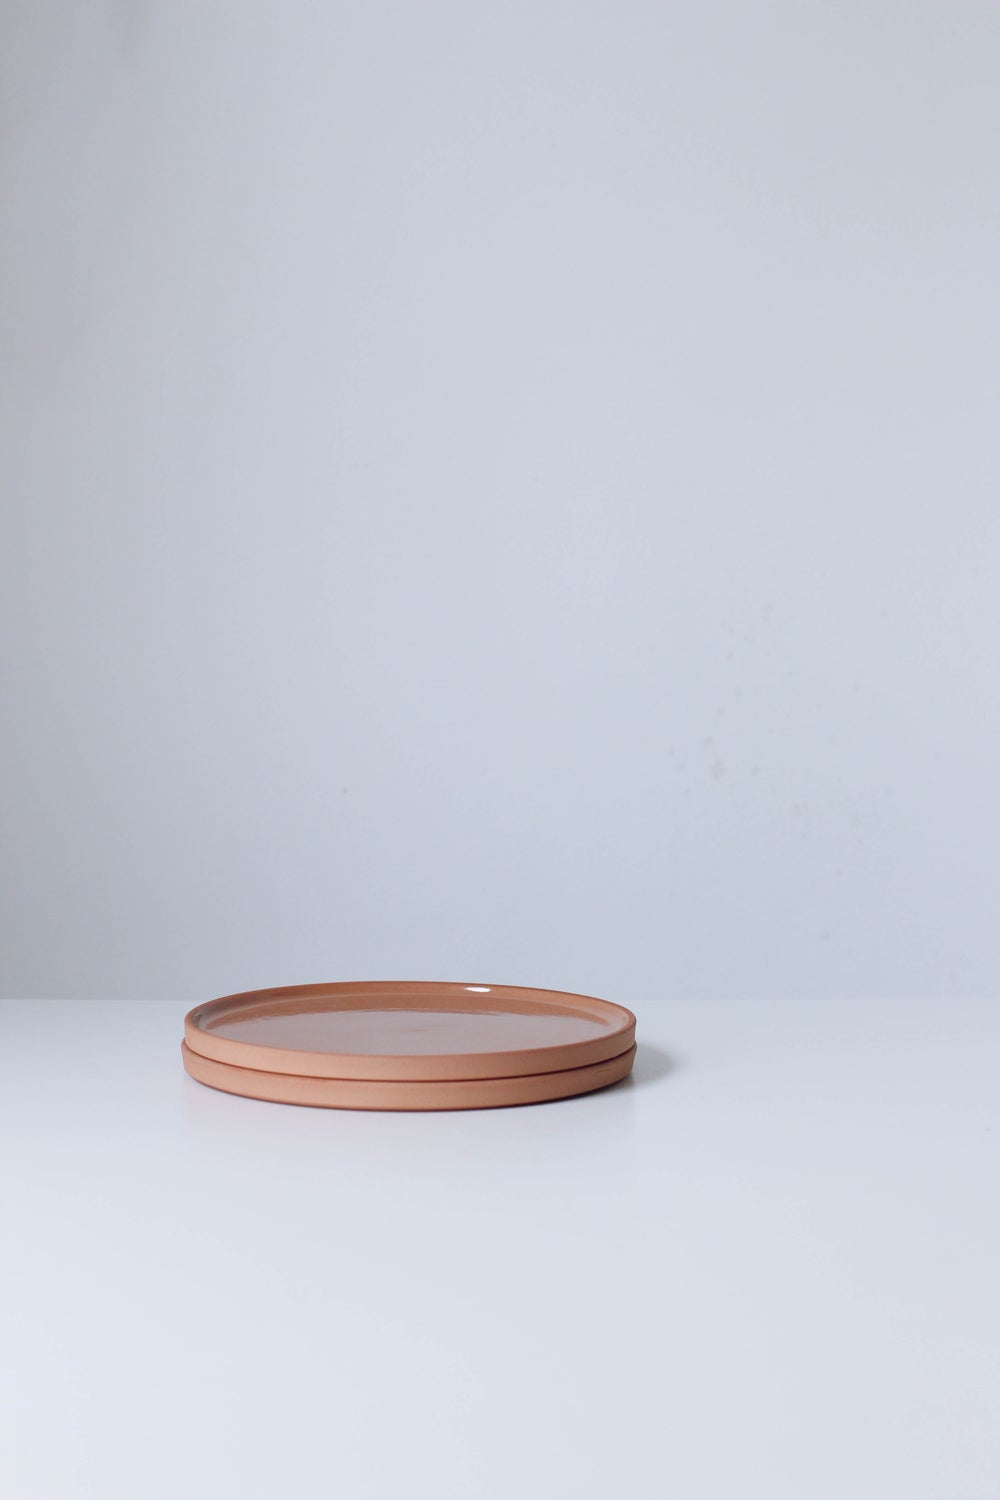 Image of Dune Side Plate